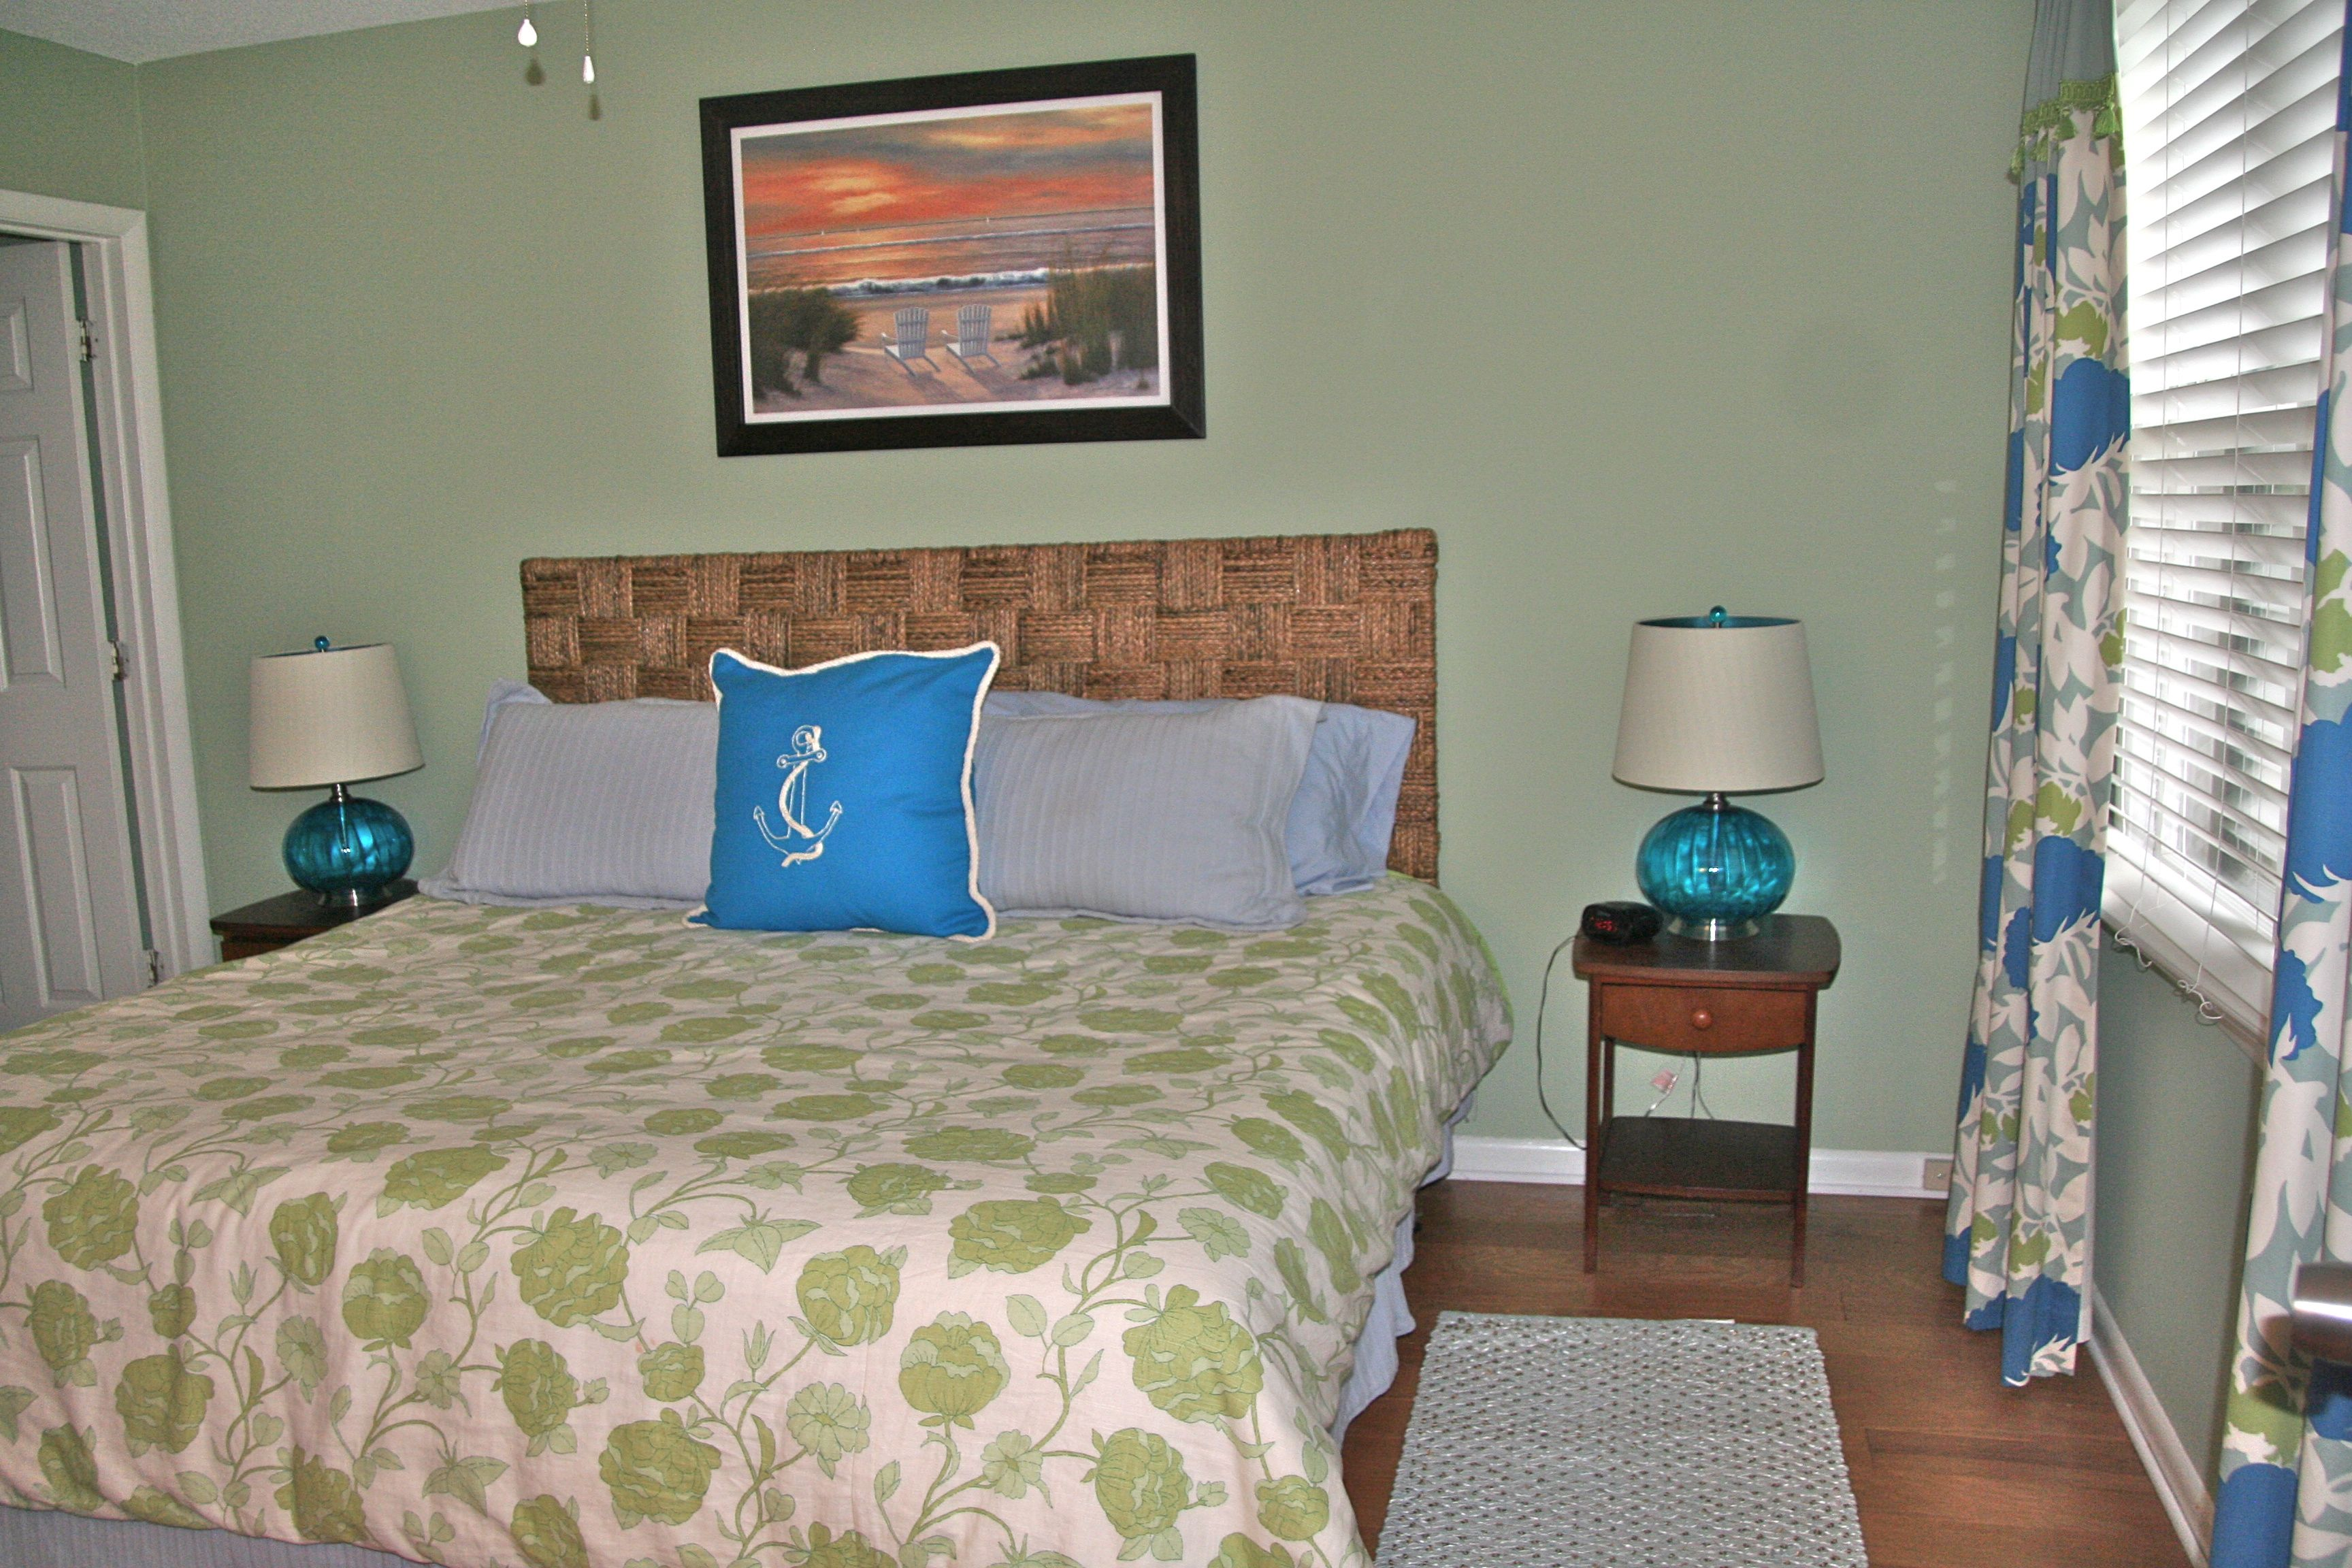 The master bedroom is on the first floor and has a king sized bed.